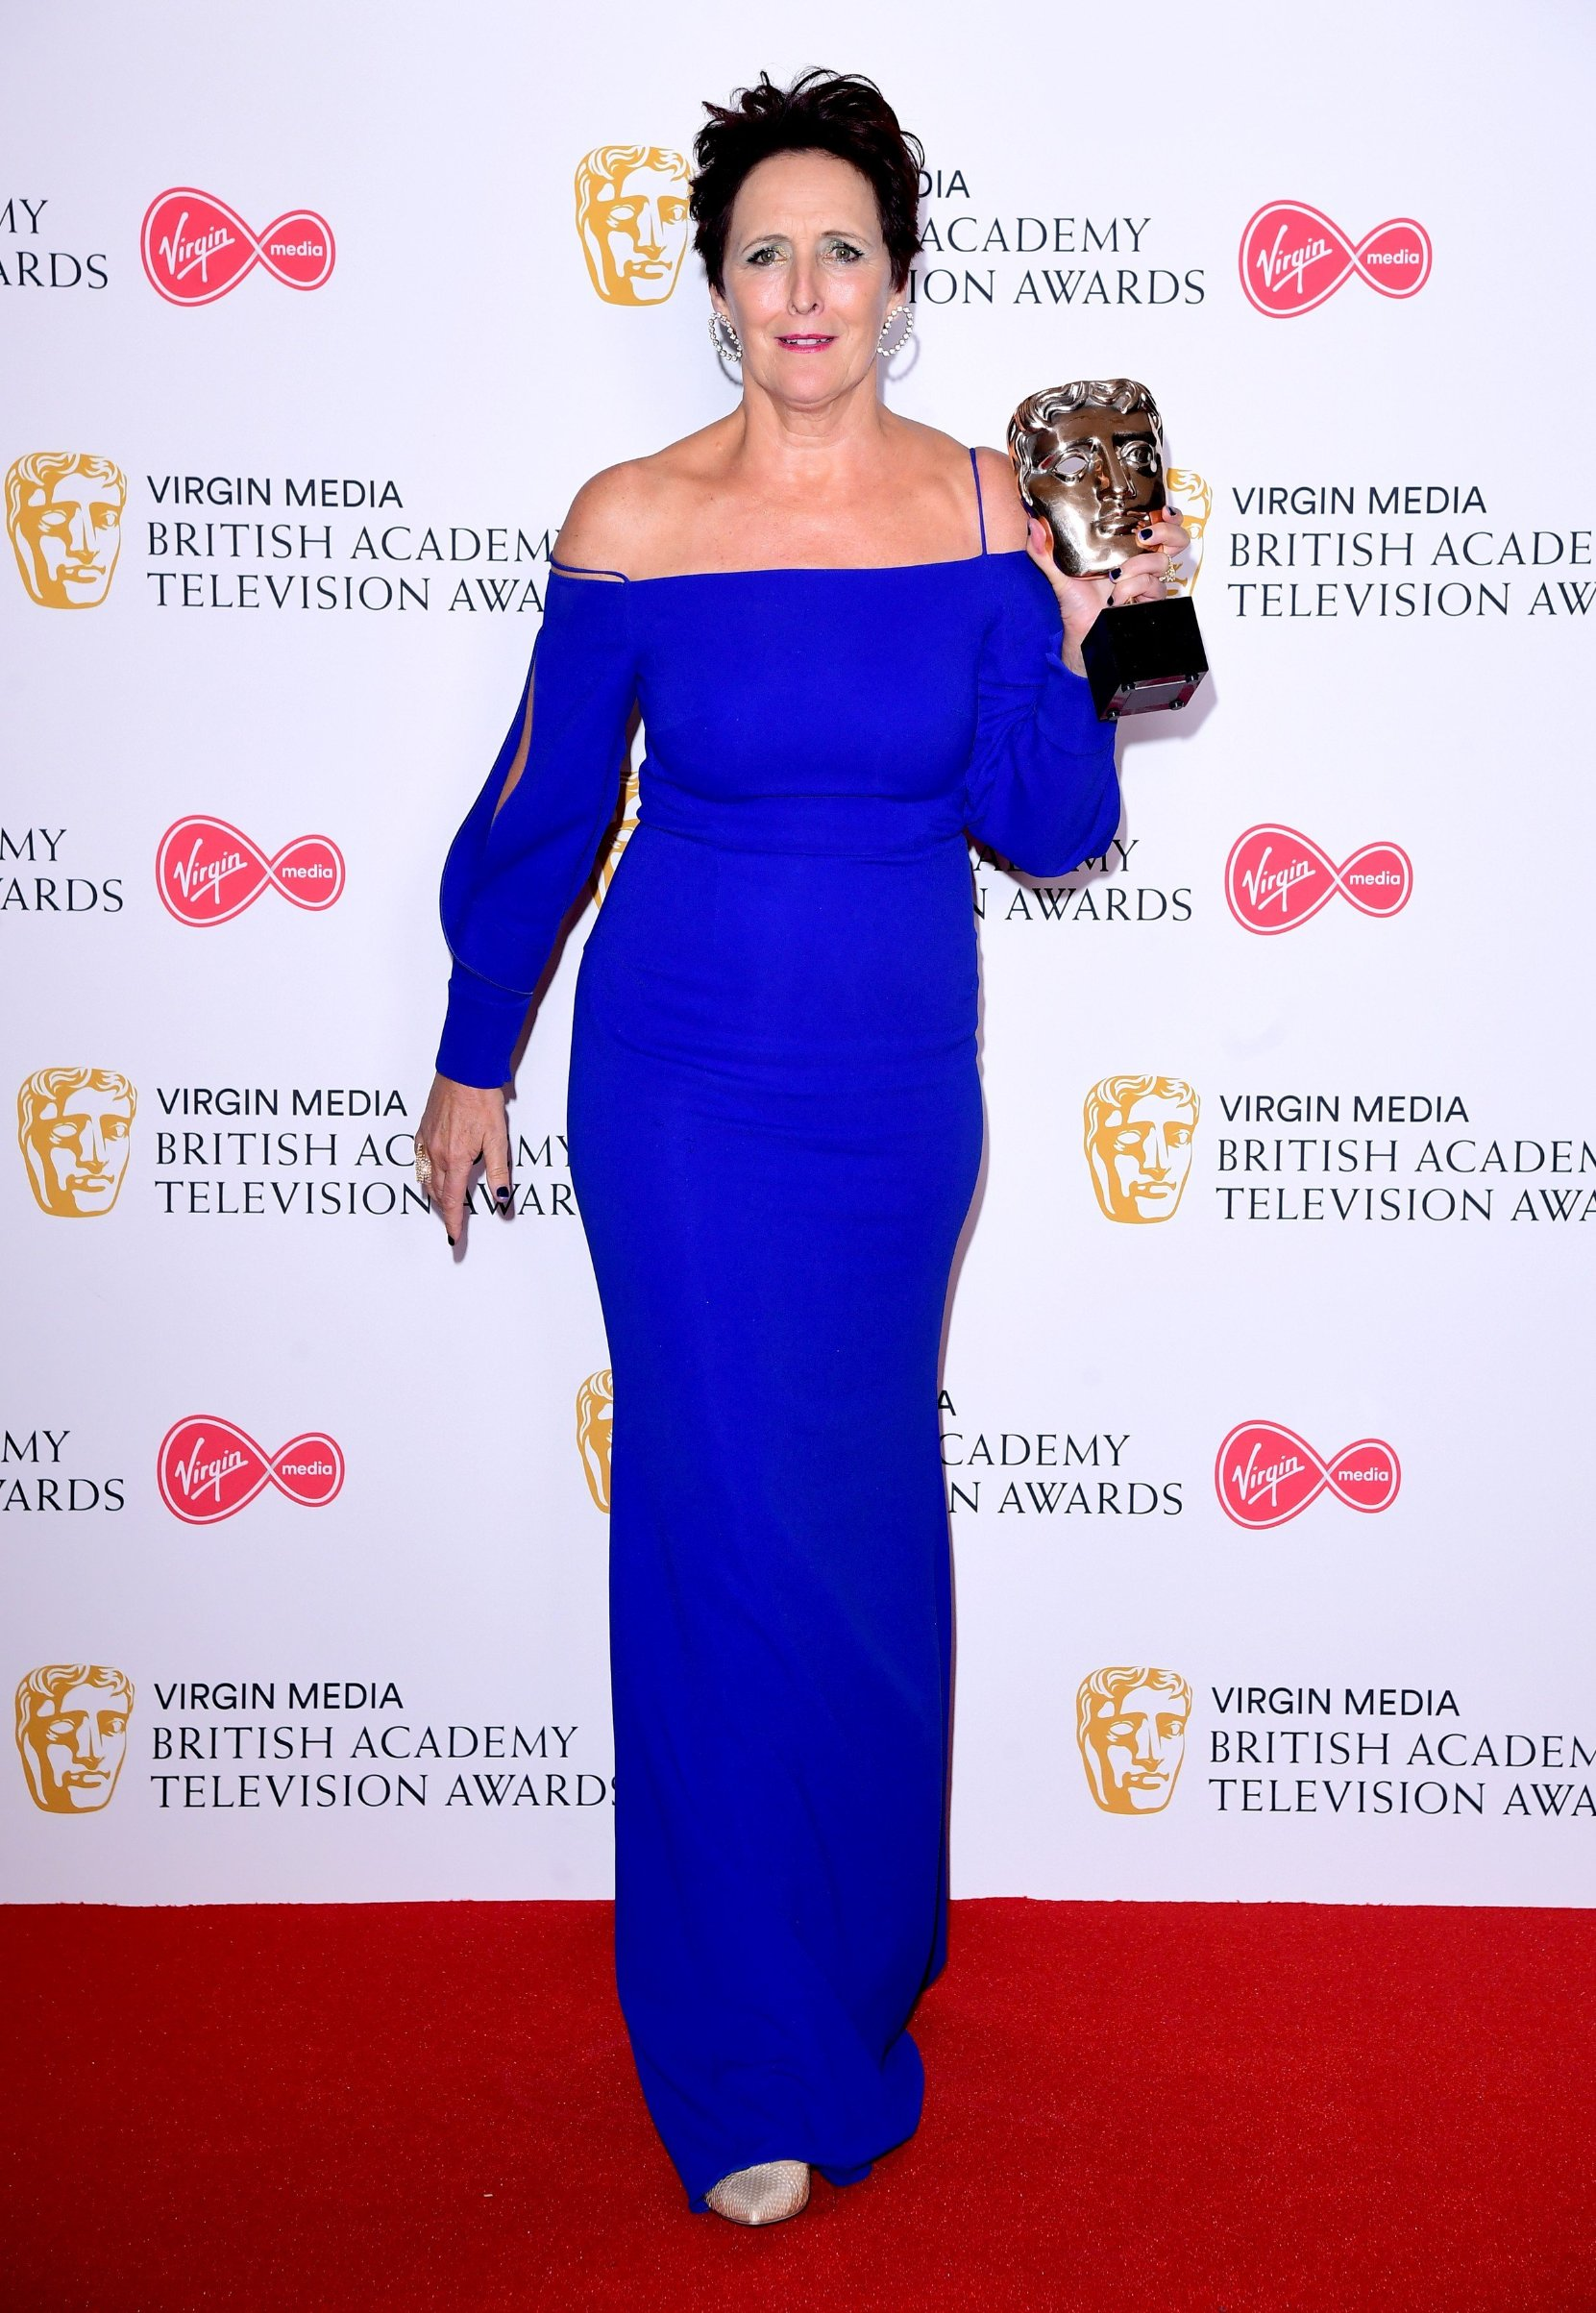 Fiona Shaw in the press room after winning the award for Best Supporting Actress at the Virgin Media BAFTA TV awards, held at the Royal Festival Hall in London., Image: 432691425, License: Rights-managed, Restrictions: , Model Release: no, Credit line: Profimedia, Press Association